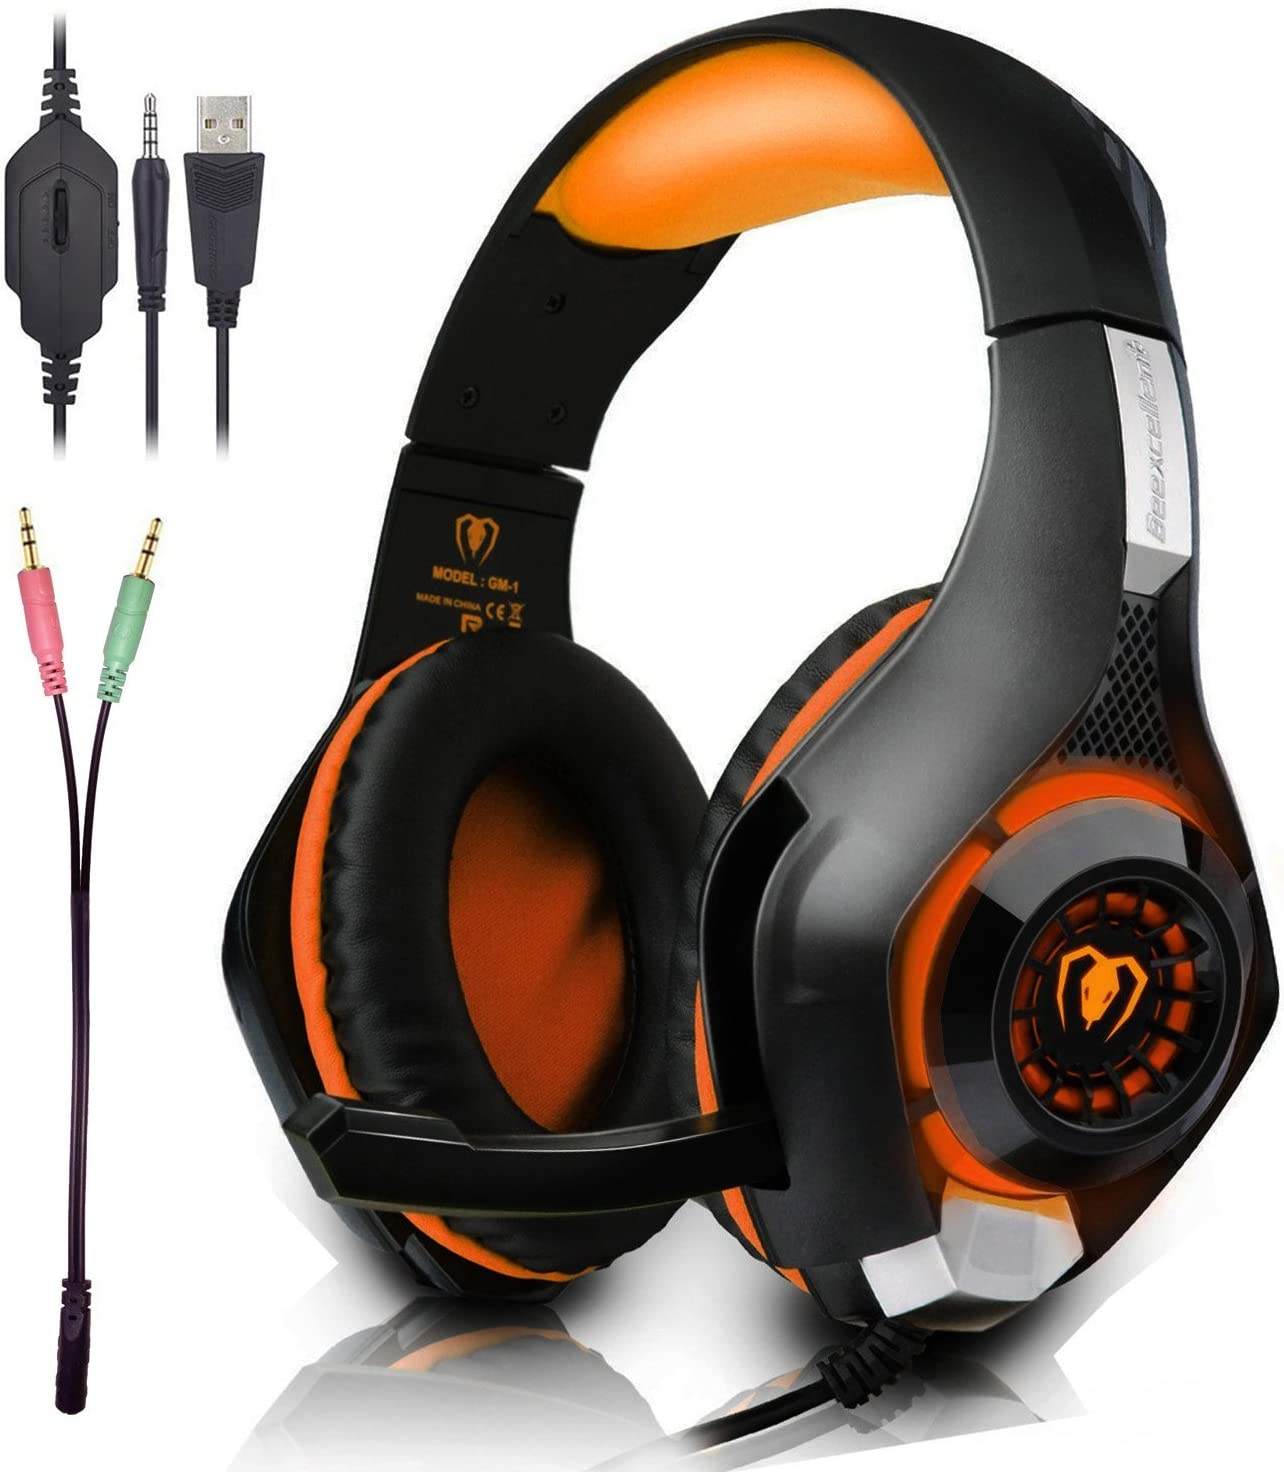 Beexcellent Gaming Headset with Microphone for New Xbox PS4 PC Smart phone Laptops- Surround Sound, Noise Reduction Game Earphone – Easy Volume Control with LED Lighting 3.5MM Jack Orange